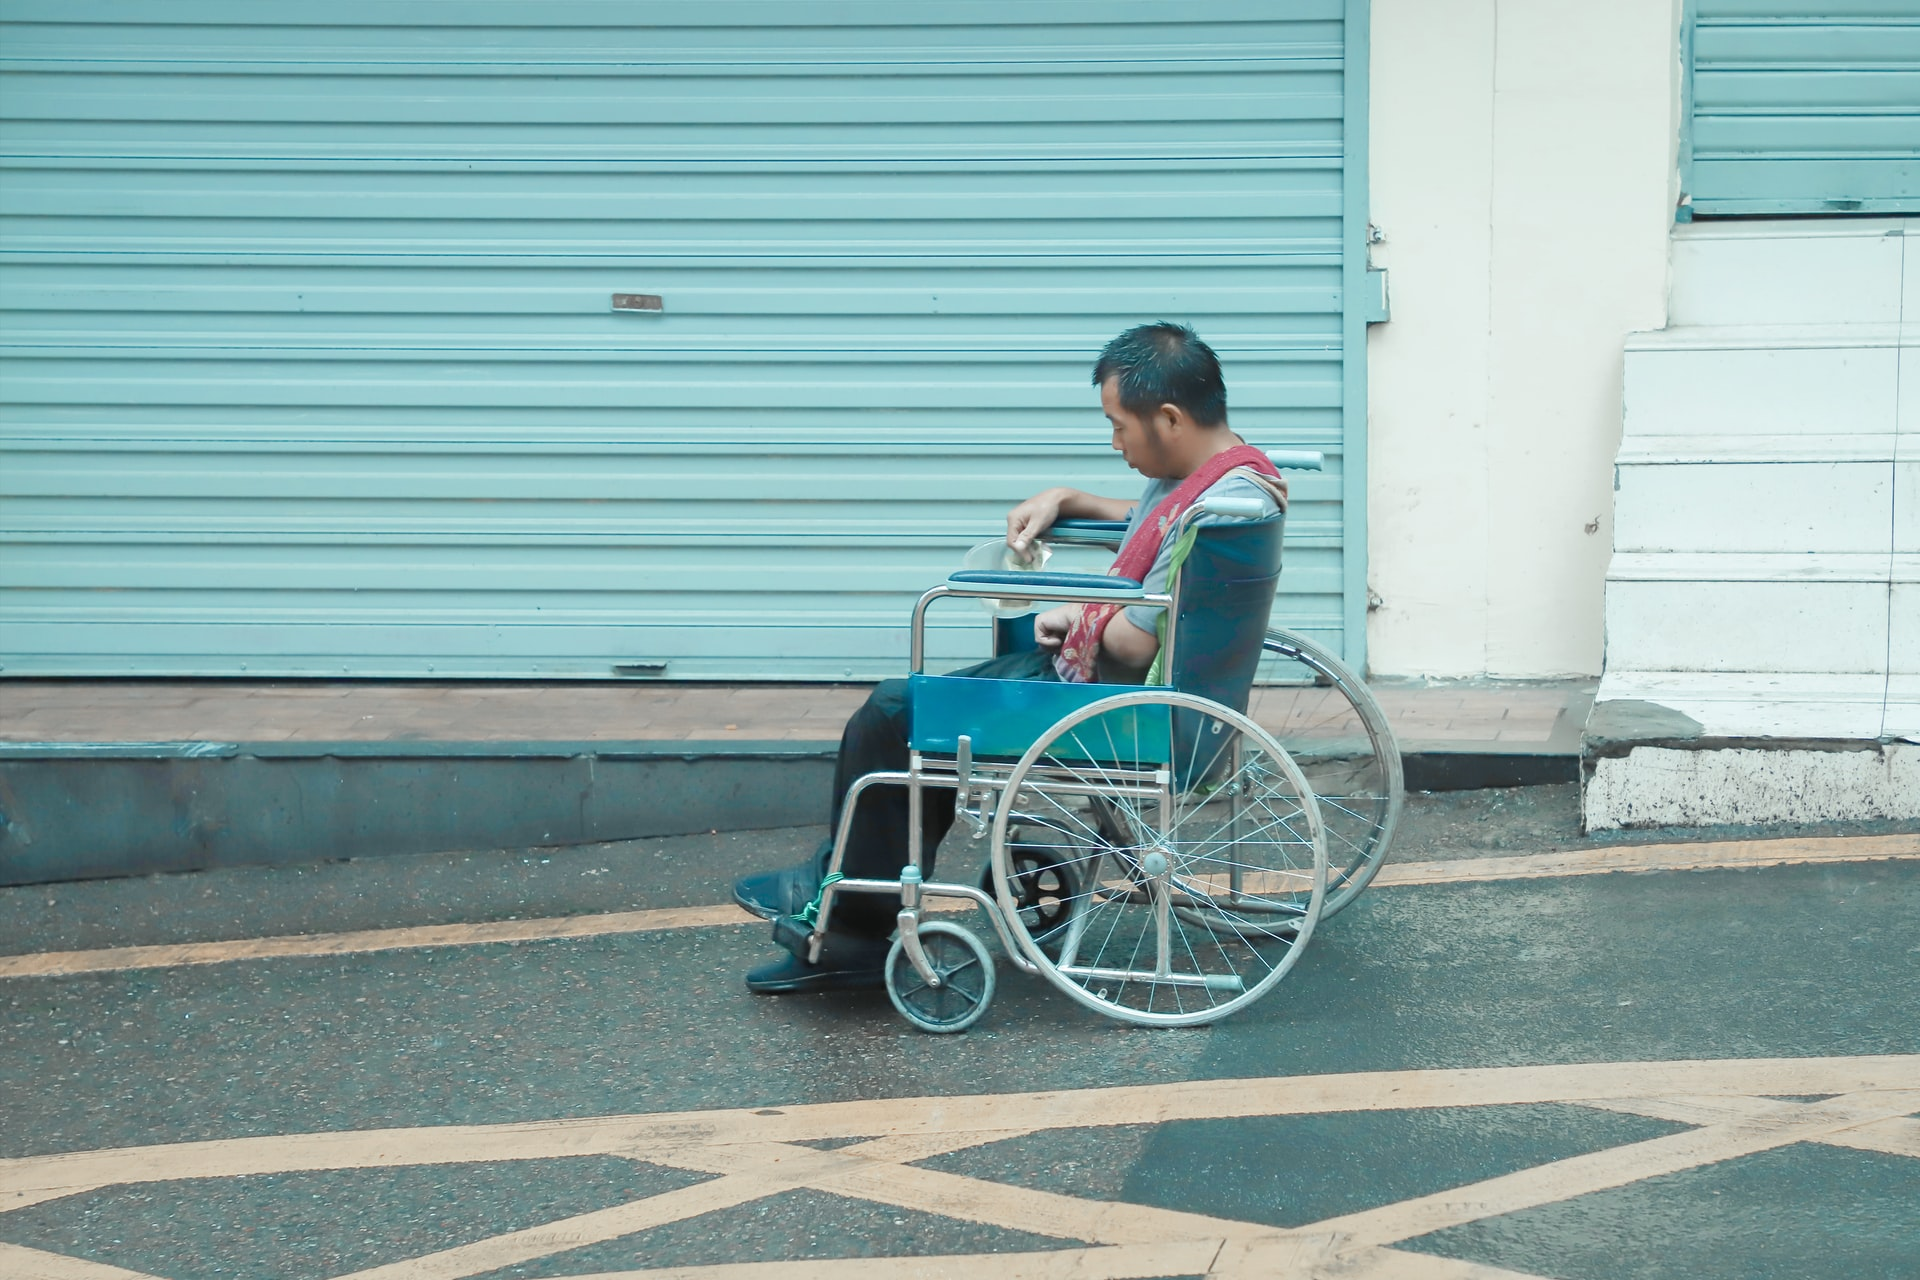 A man sits in a whhelchair alone on the side of a street